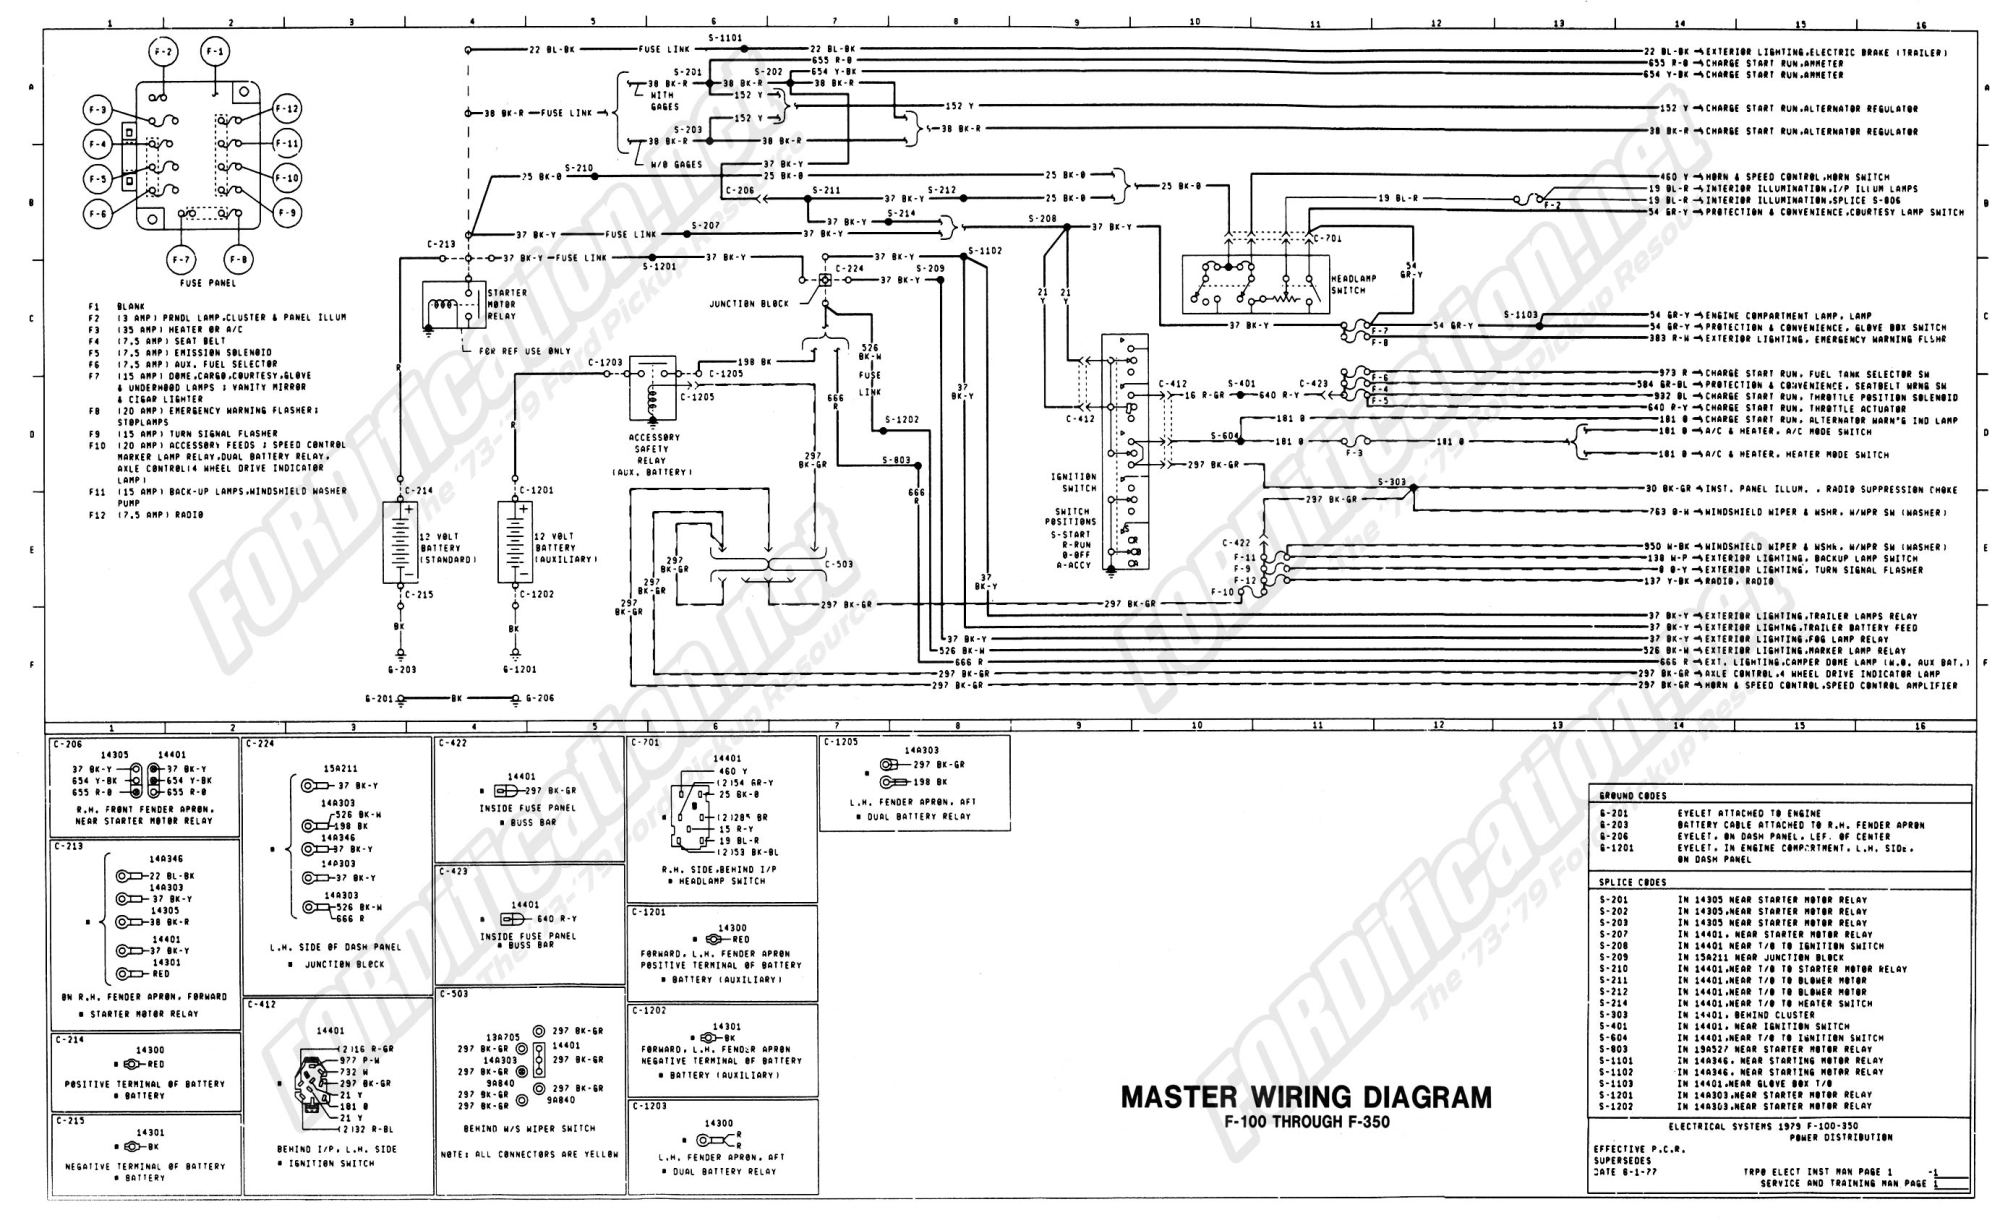 hight resolution of wiring diagram for 1980 ford van wiring diagram third levelwiring diagram for 1980 ford van data